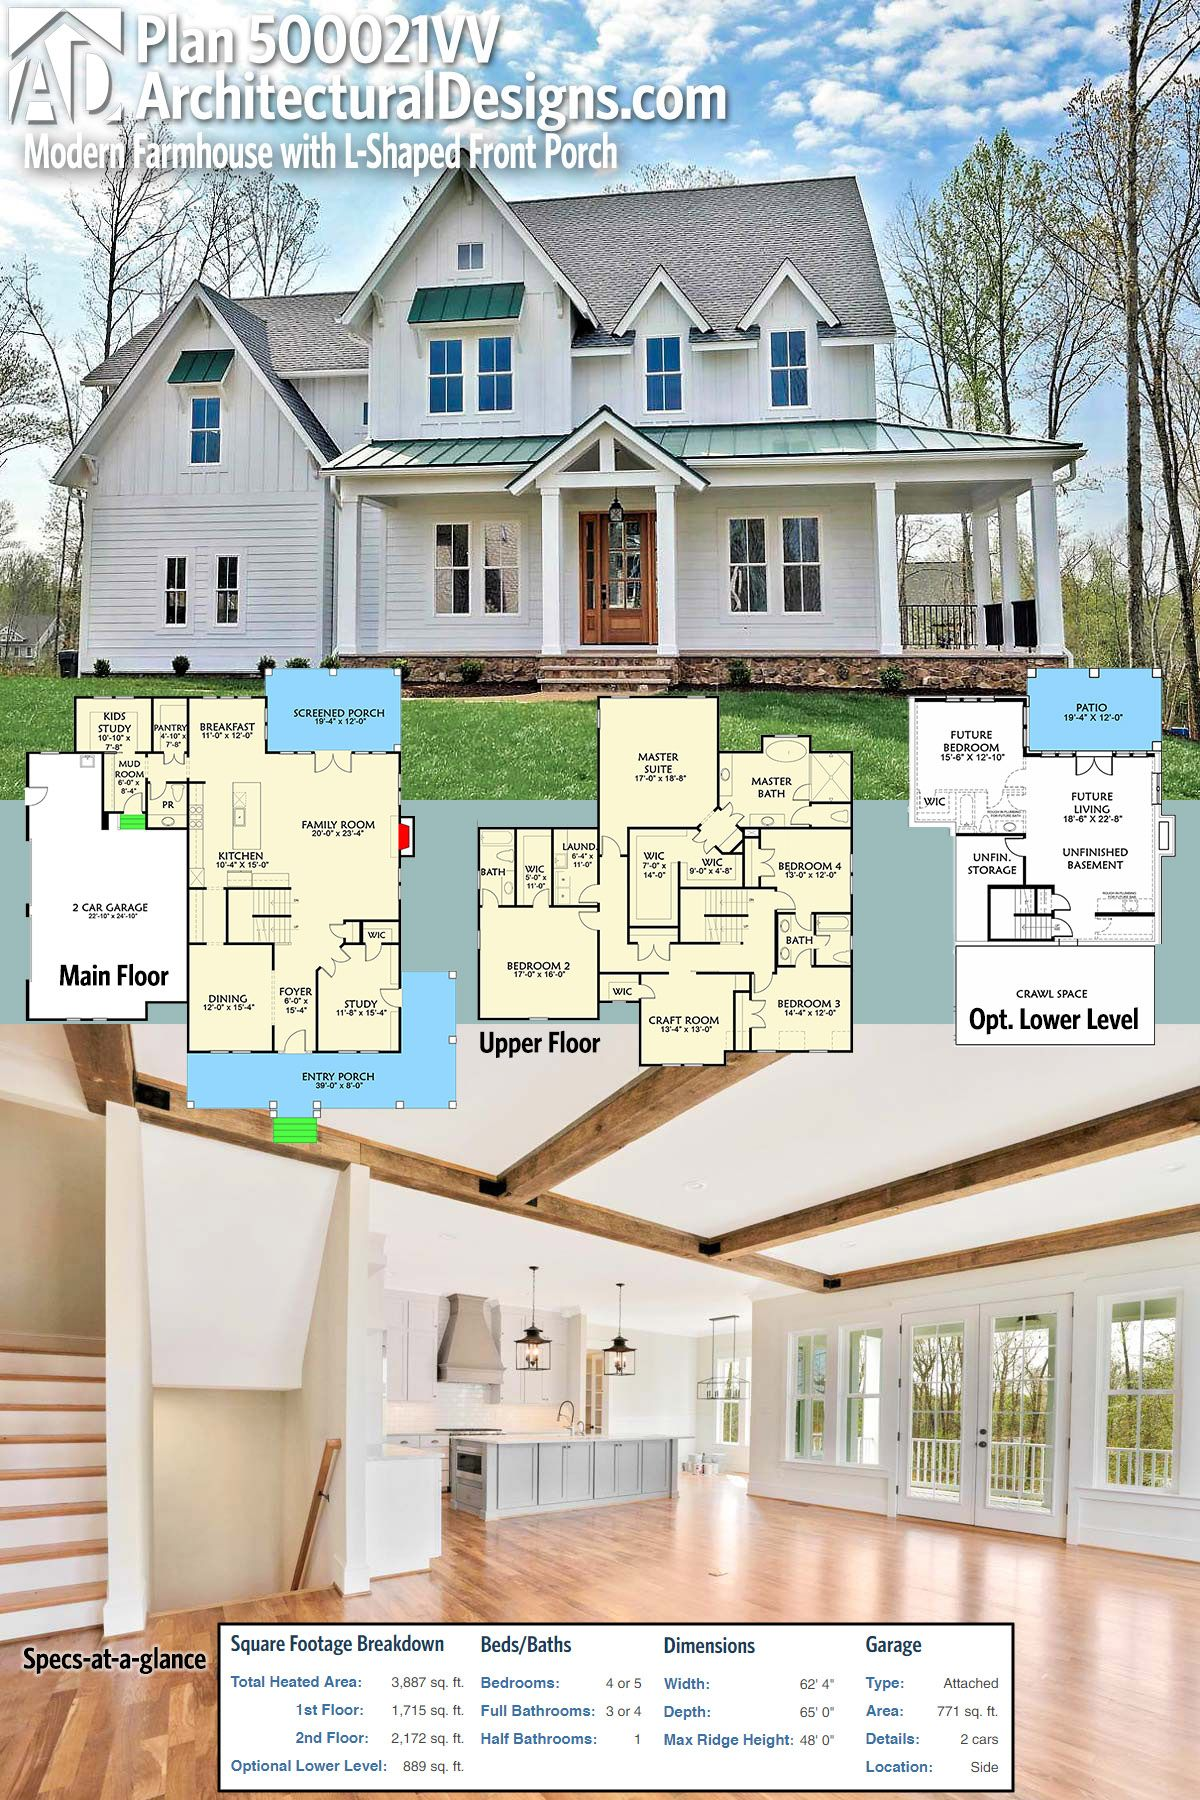 Plan 500021vv Modern Farmhouse With L Shaped Front Porch